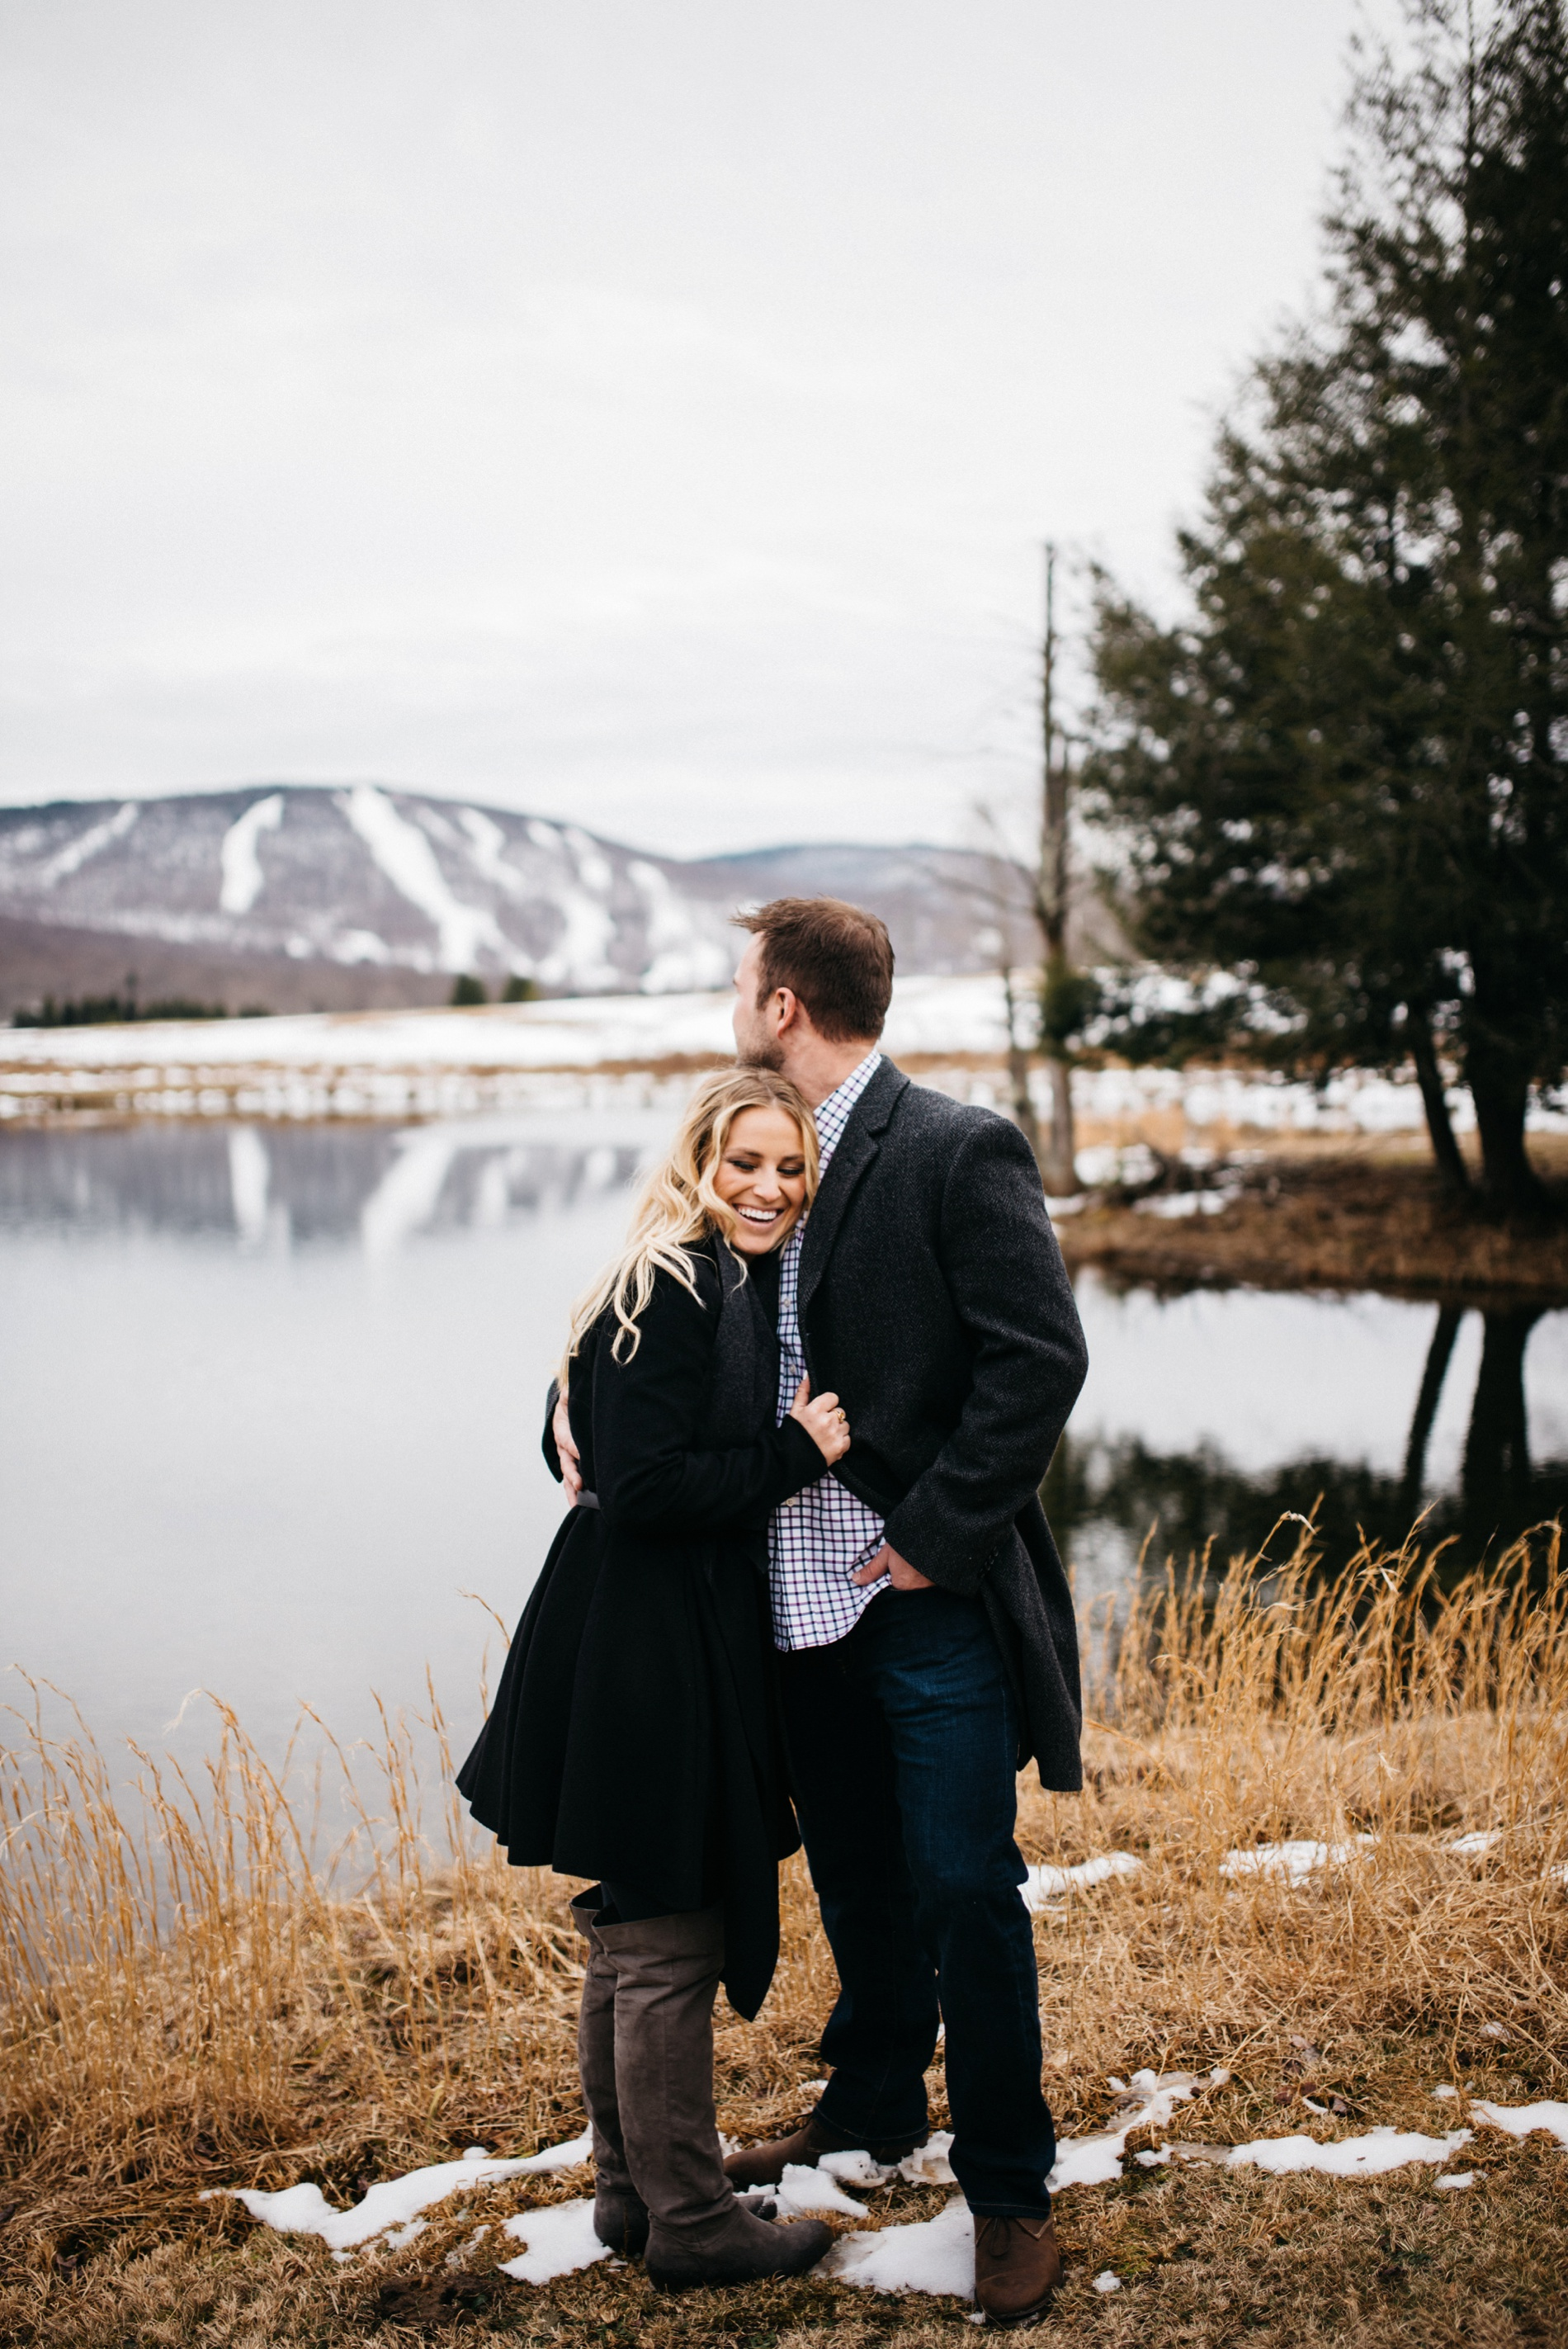 canaan valley engagement